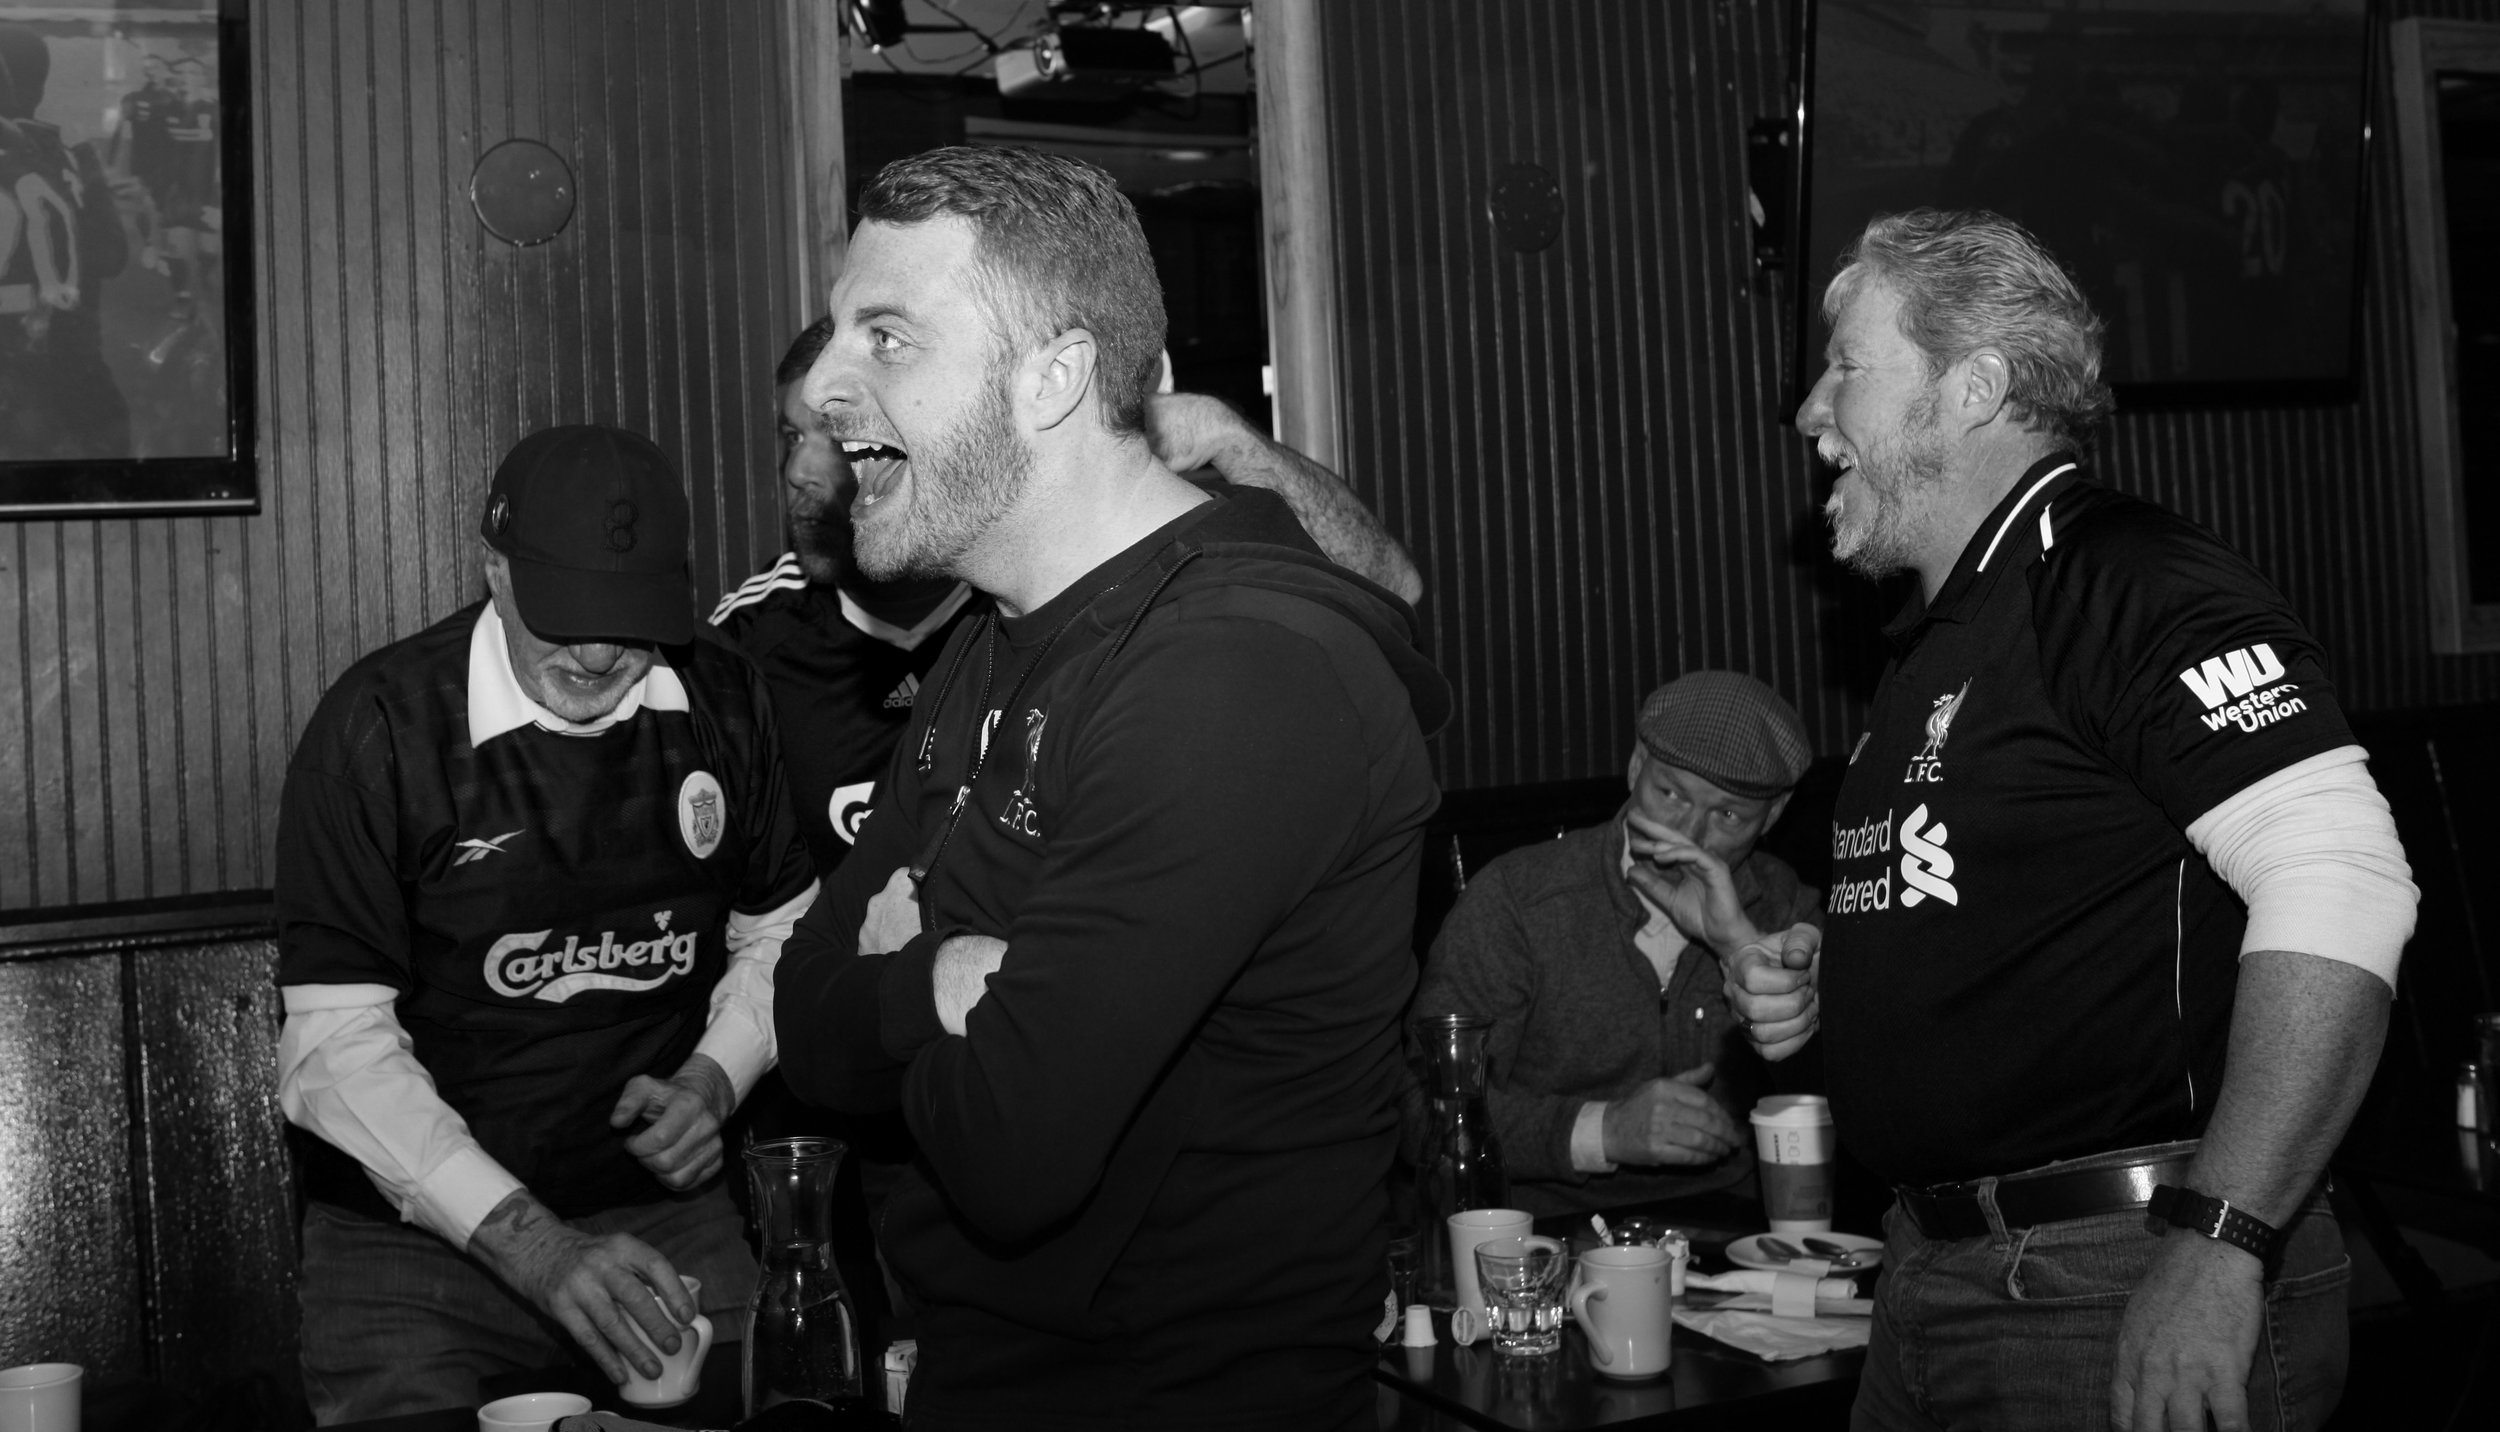 janette-beckman-lfc-supporters-rob-glover-liverpool.jpg